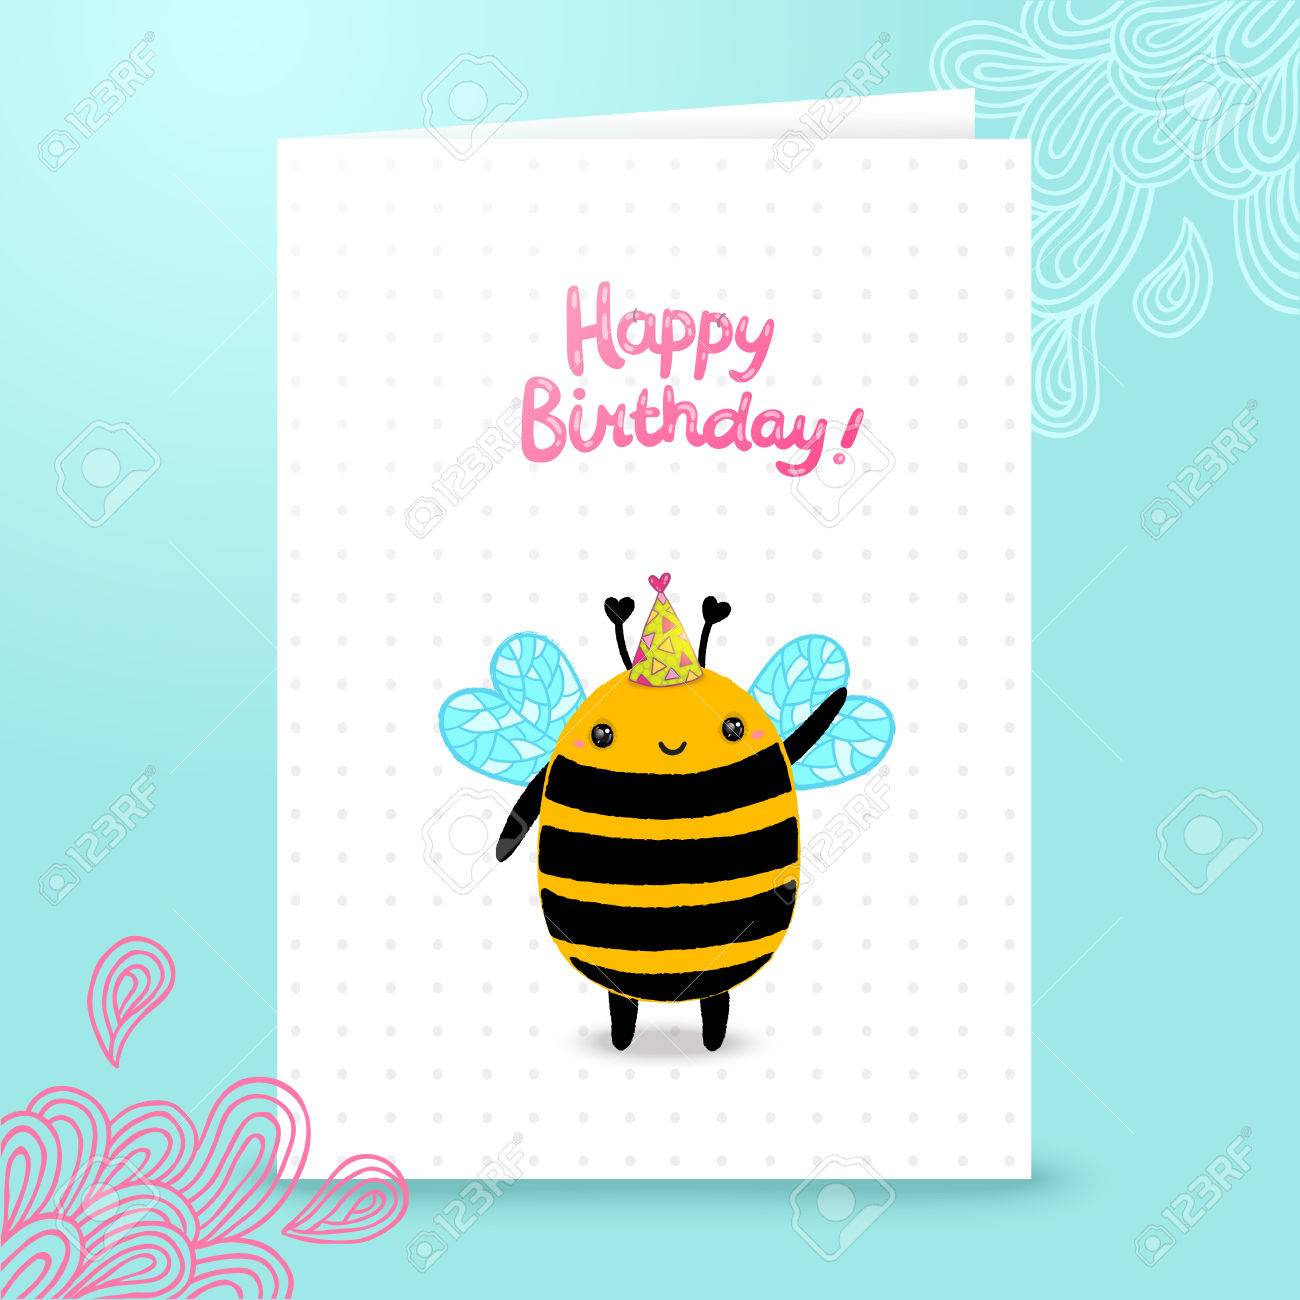 Happy Birthday Card Background With A Bee. Vector Holiday Party ...